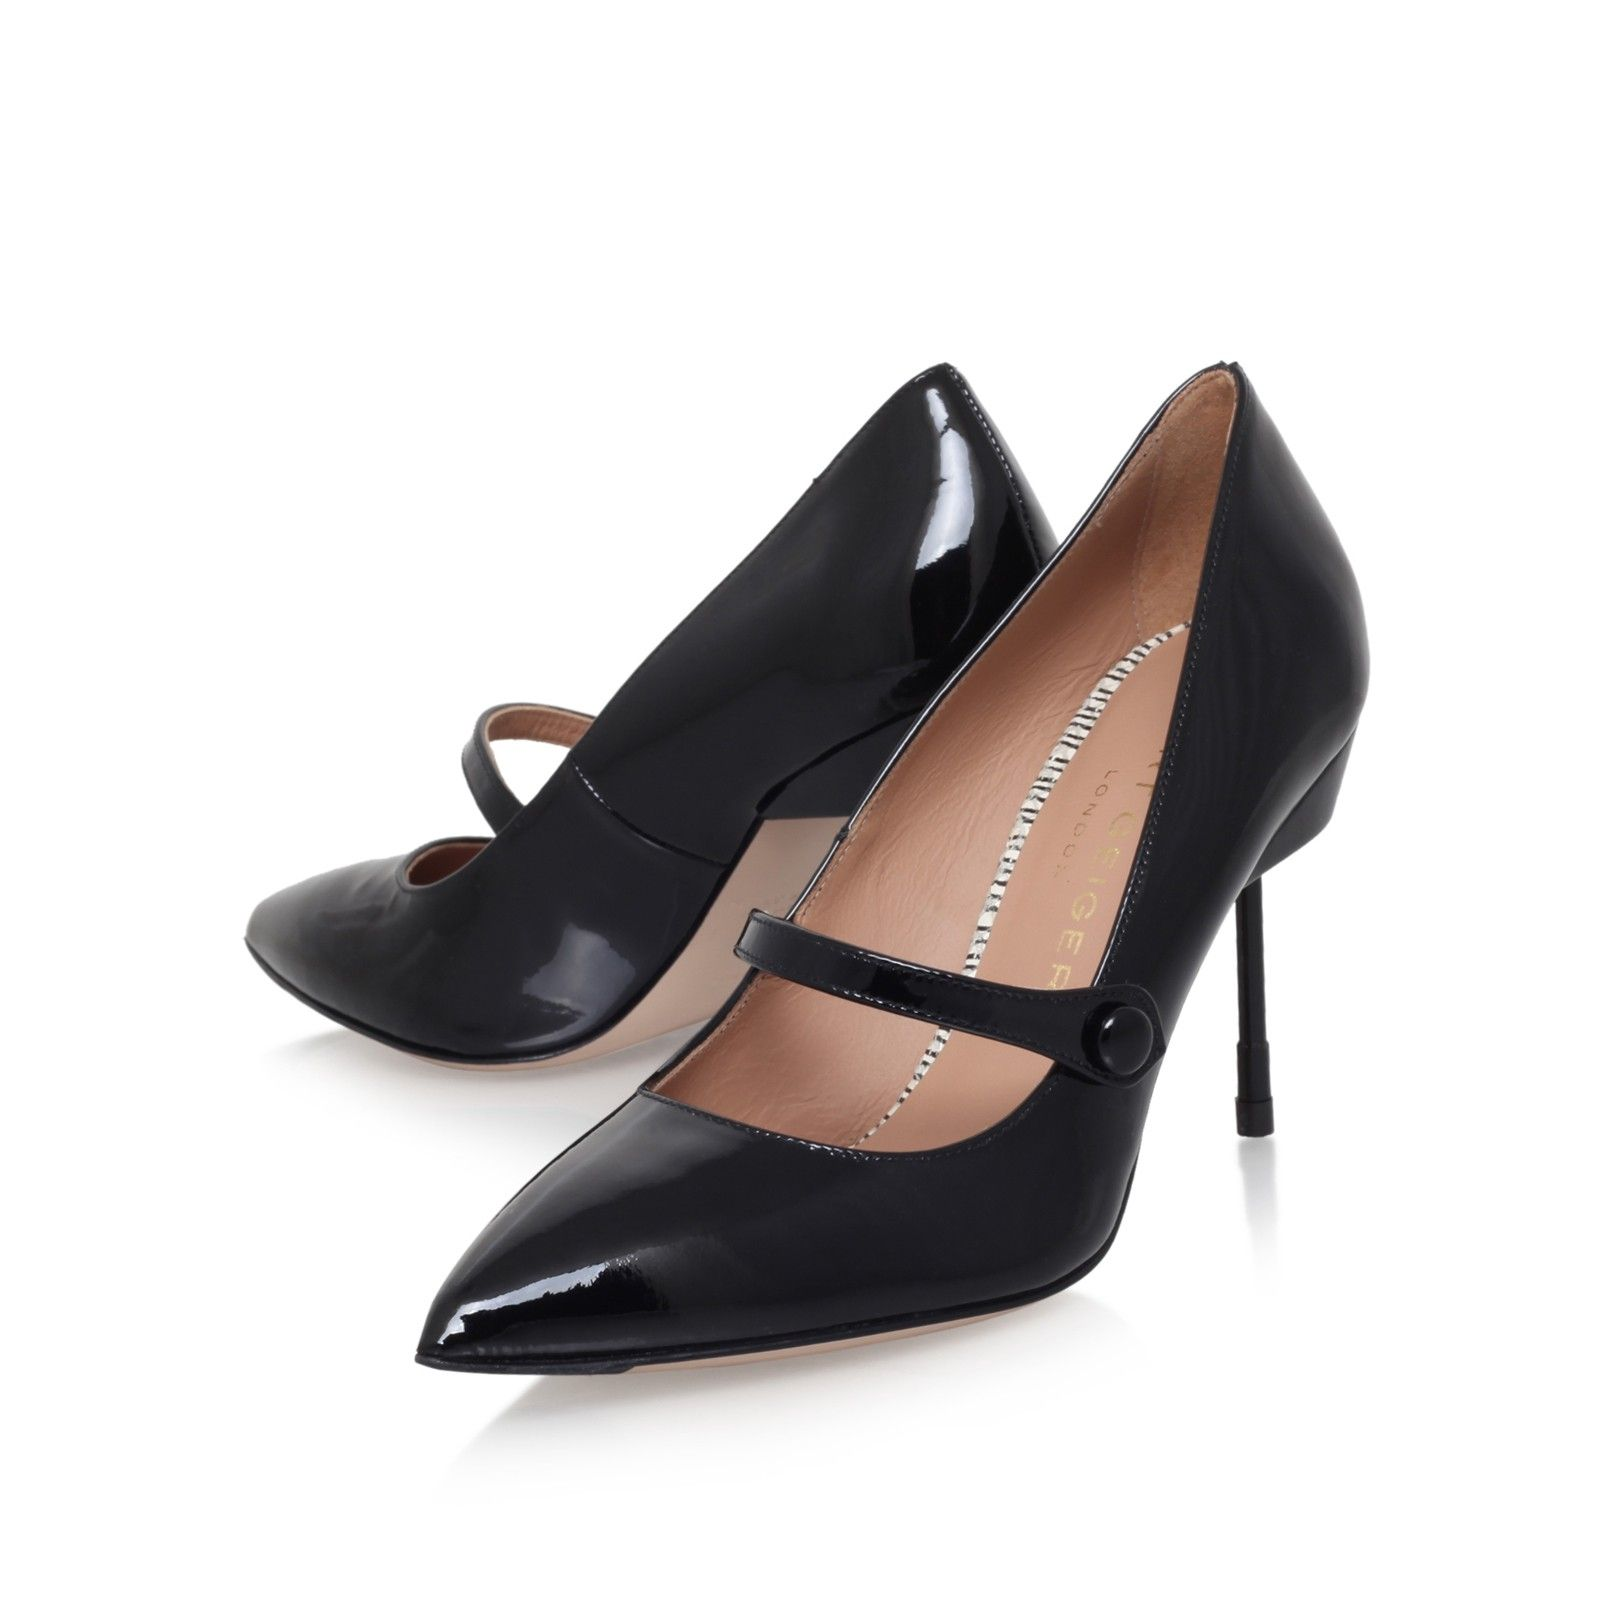 babington black mid heel court shoes from Kurt Geiger London